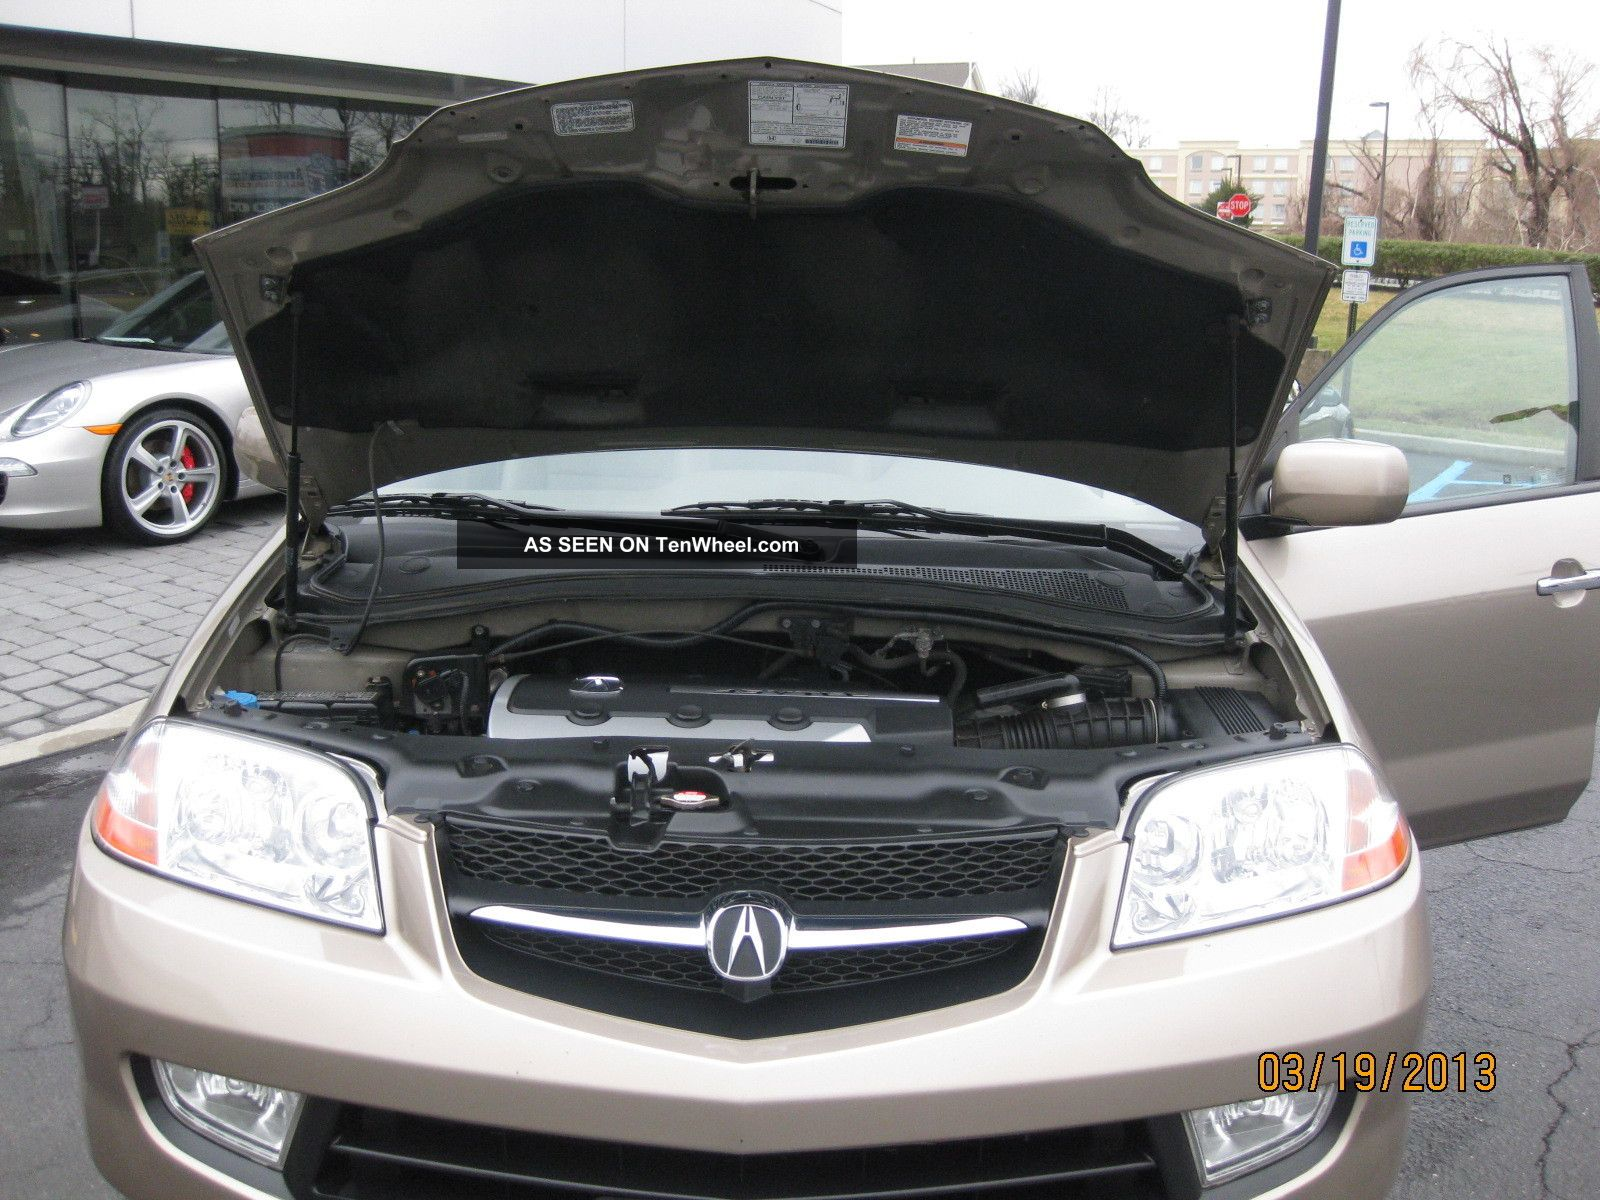 Service Manual Removal Instructions For A 2007 Acura Mdx